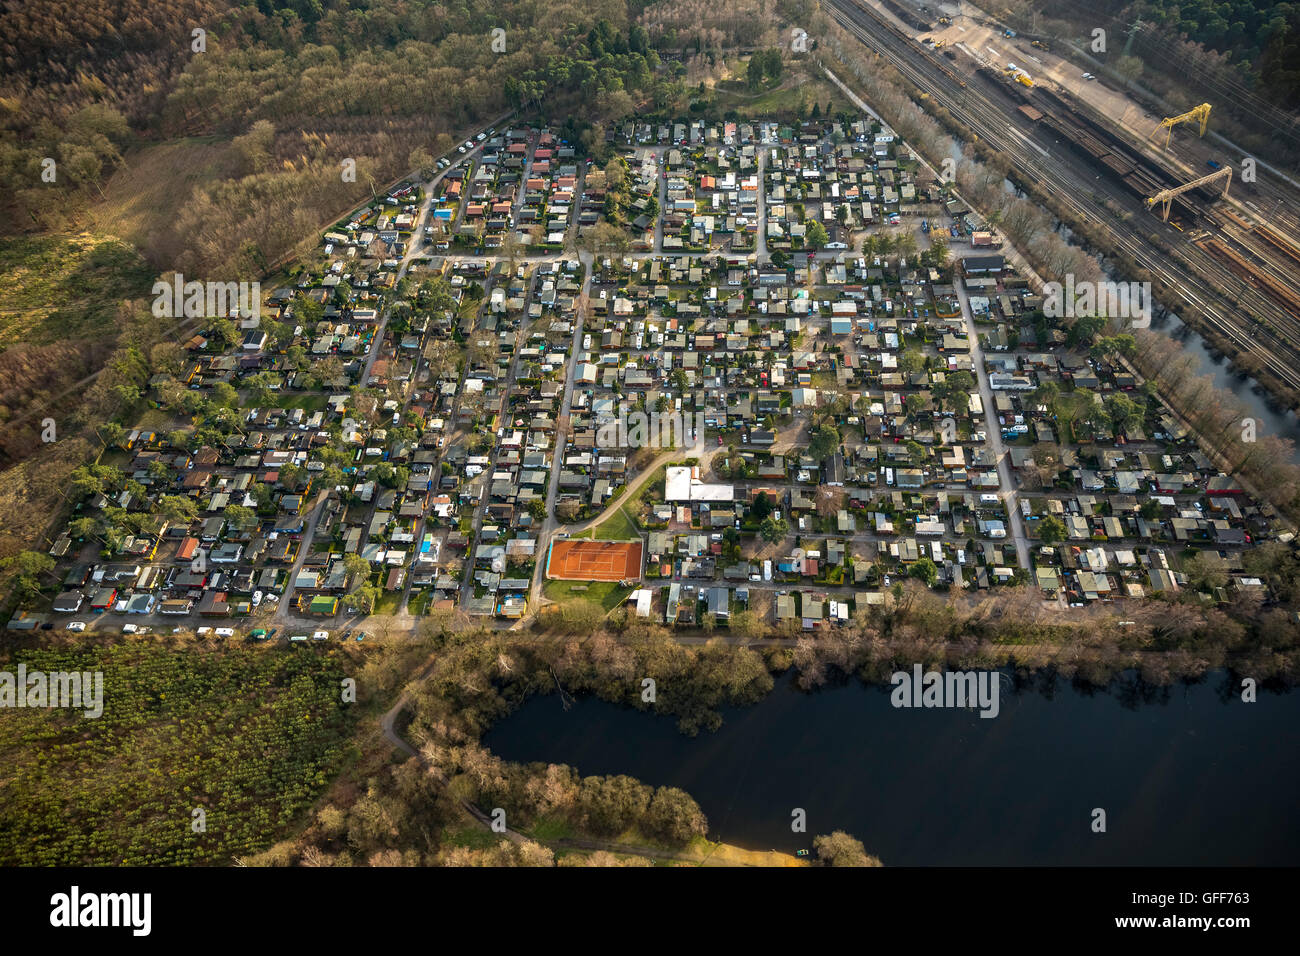 Aerial view, camping Entenfang, Duisburg Lakeland, annual rent, Mülheim an der Ruhr, Ruhr area, North Rhine - Stock Image